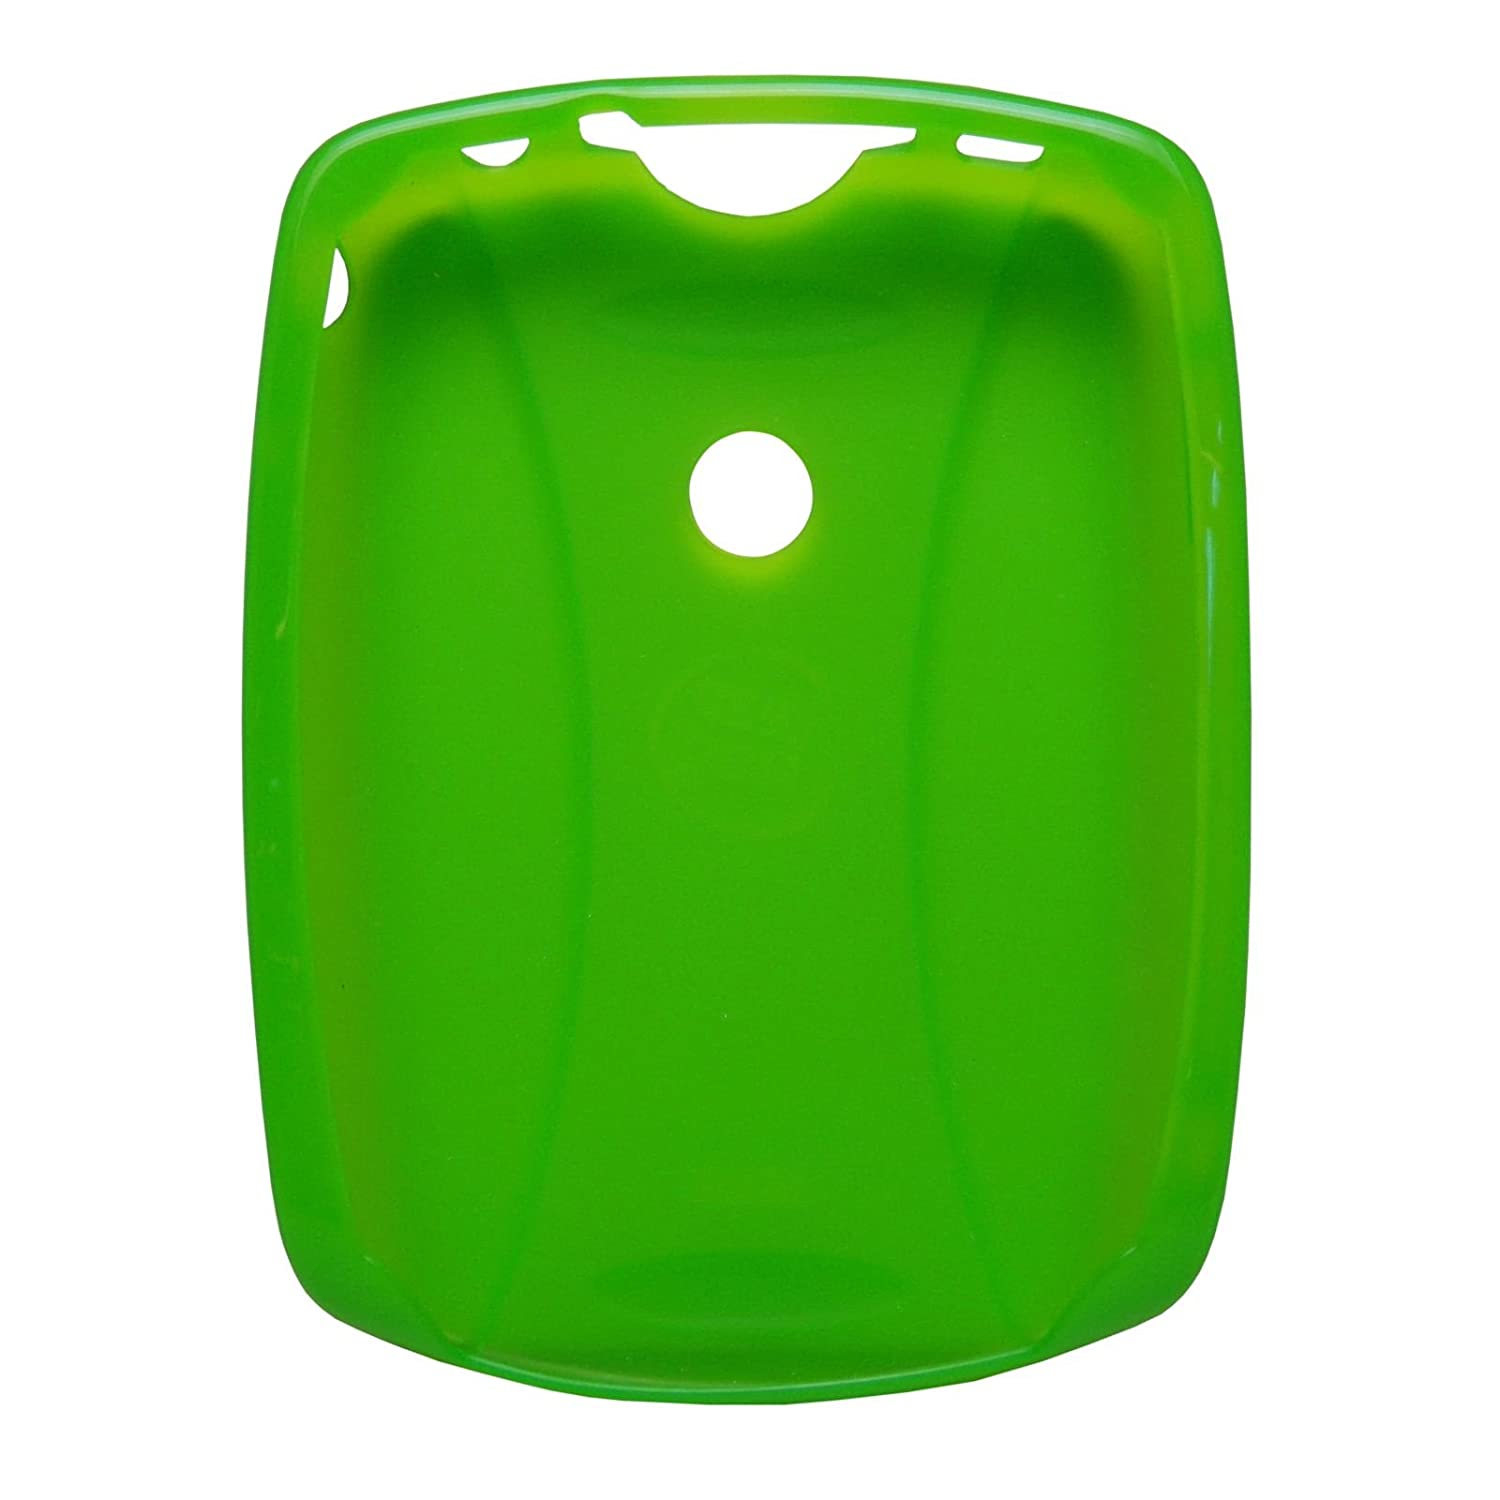 LeapFrog LeapPad2 Gel Skin, Green (Works with LeapPad2 or LeapPad1)$4.99